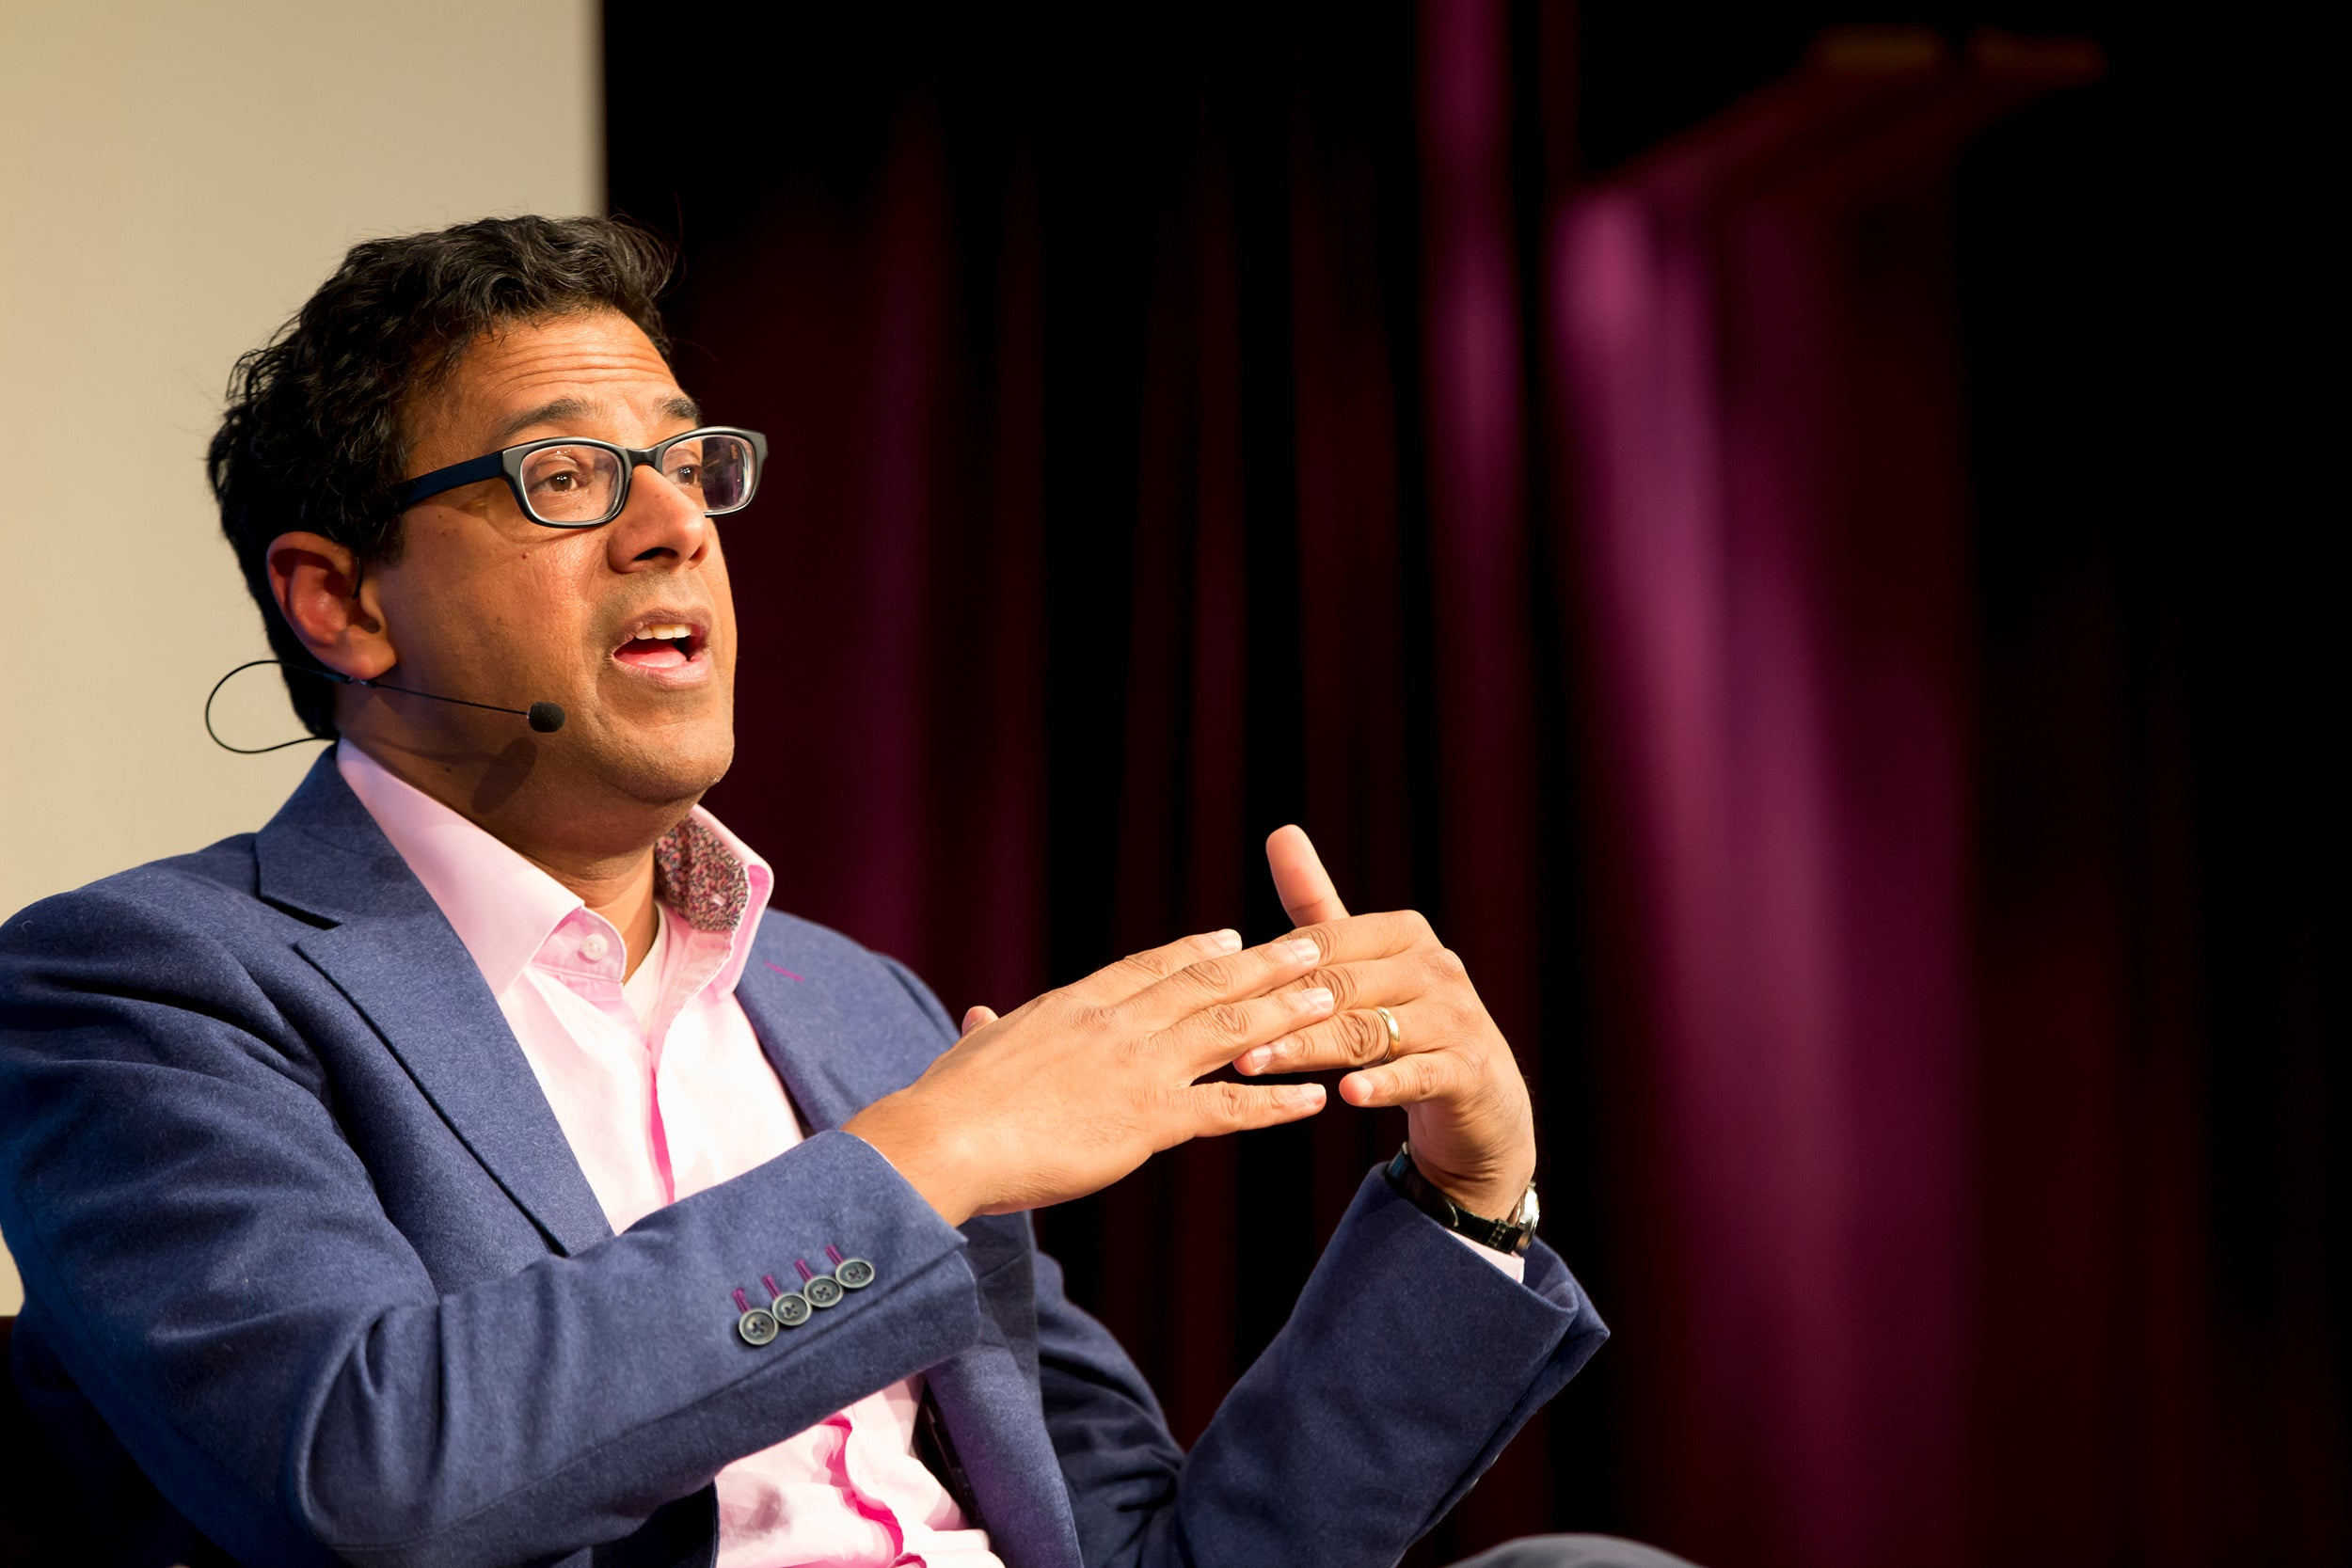 At a JFK Jr. Forum talk with science journalist Cristine Russell (not pictured), doctor and author Atul Gawande discussed the state of public health and the effectiveness of public policies in combating health issues.